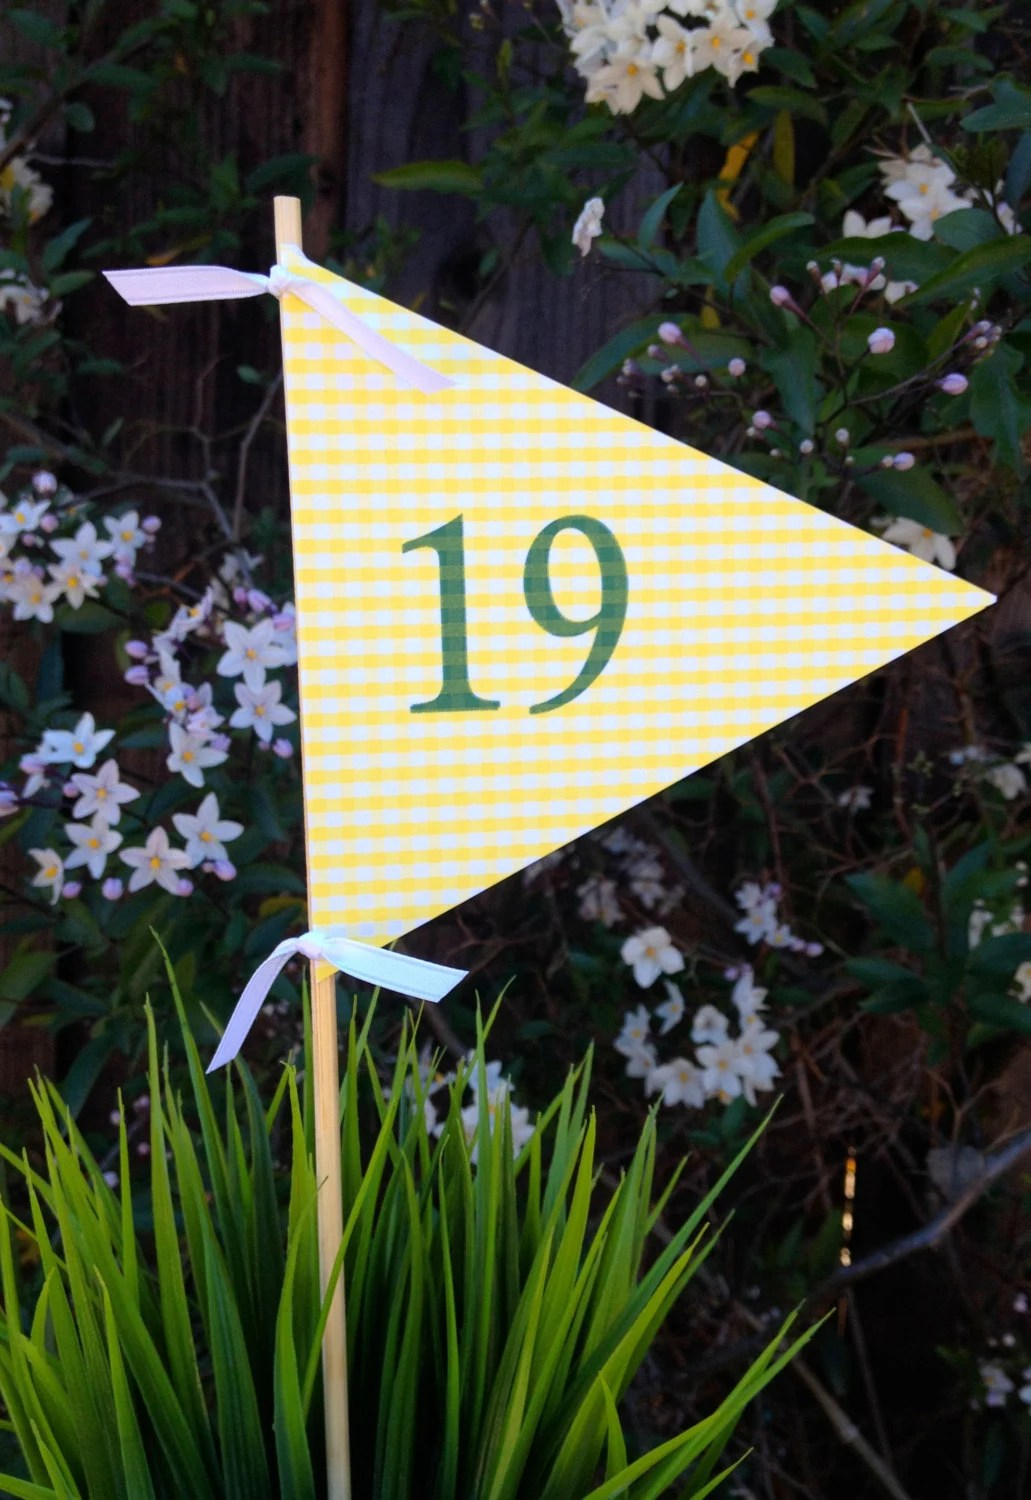 The Tile Shop Golf Flag Centerpiece For The 19th Hole By Jacolynmurphy